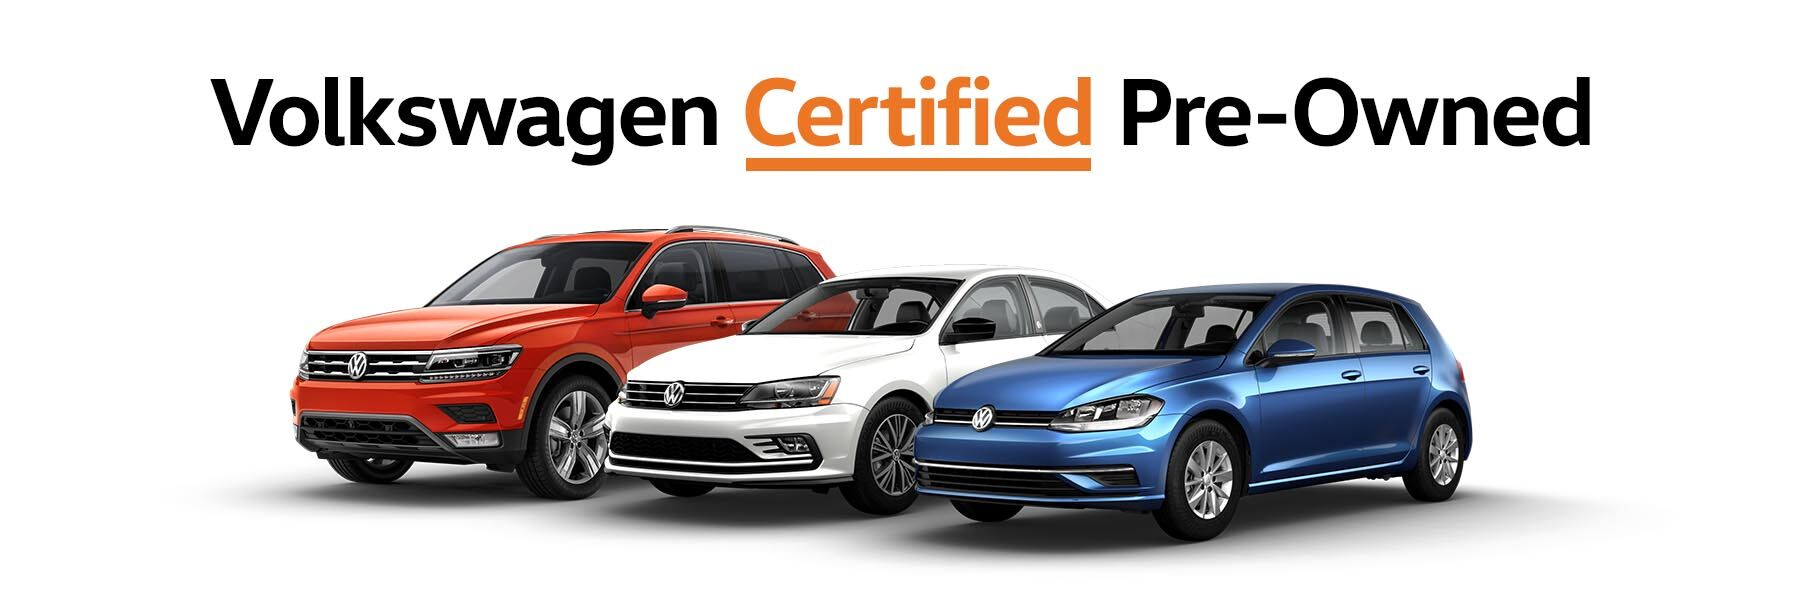 Volkswagen Certified Pre-Owned in Seattle, WA